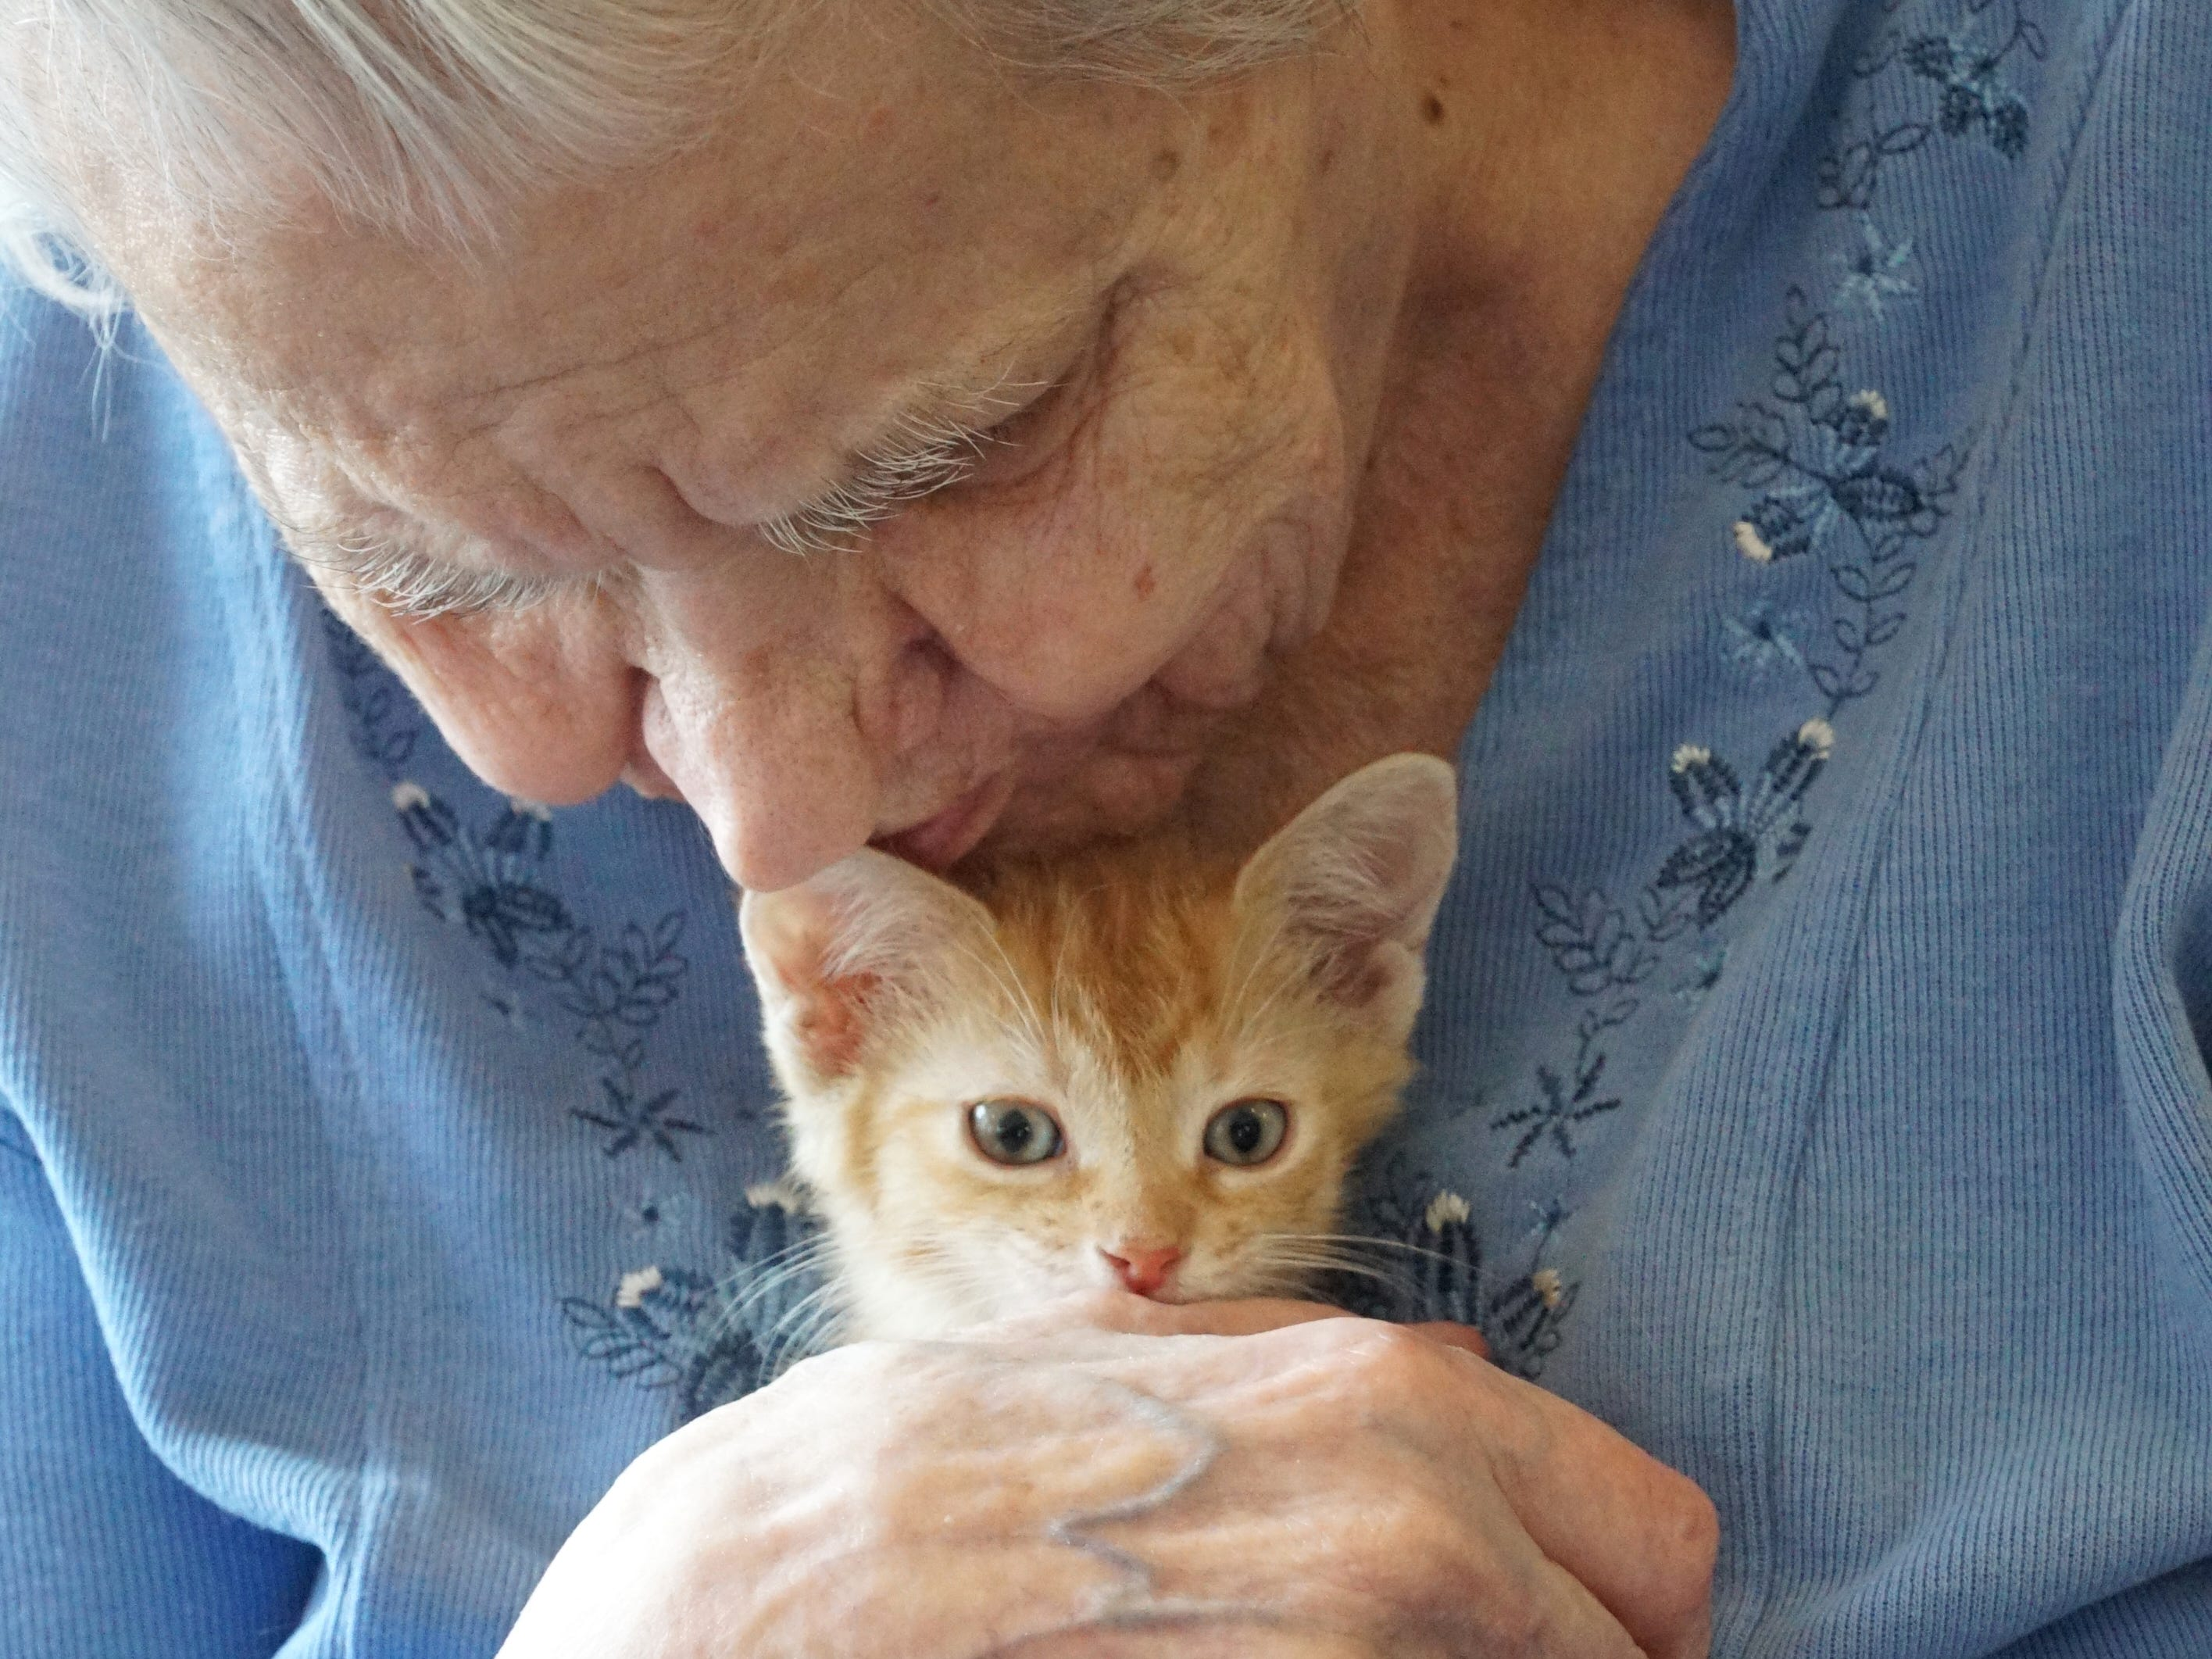 Connie Hunter gives a little kiss to the ear of a kitten that's visiting her and South Lyon Senior Care and Rehab on Feb.16. Volunteers from Feral Kitty Trappers brought a bunch of cats and kittens to the center that day so that the residents could cuddle a kitten and pet a cat if they wanted.